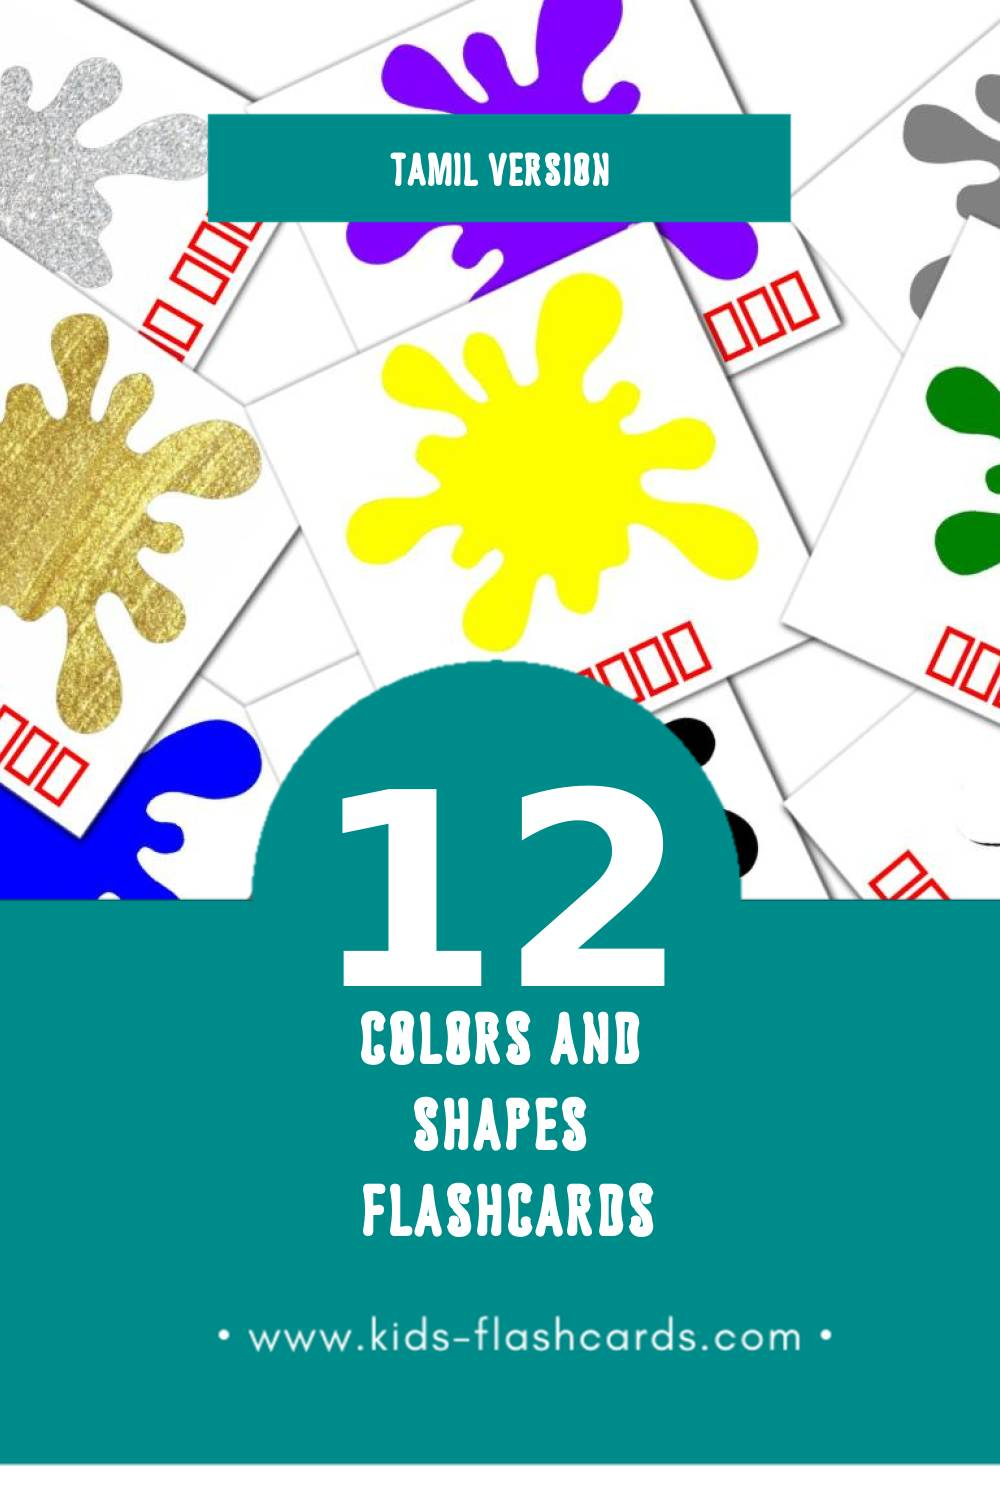 Visual நிறங்கள் மற்றும் வடிவங்கள் Flashcards for Toddlers (12 cards in Tamil)